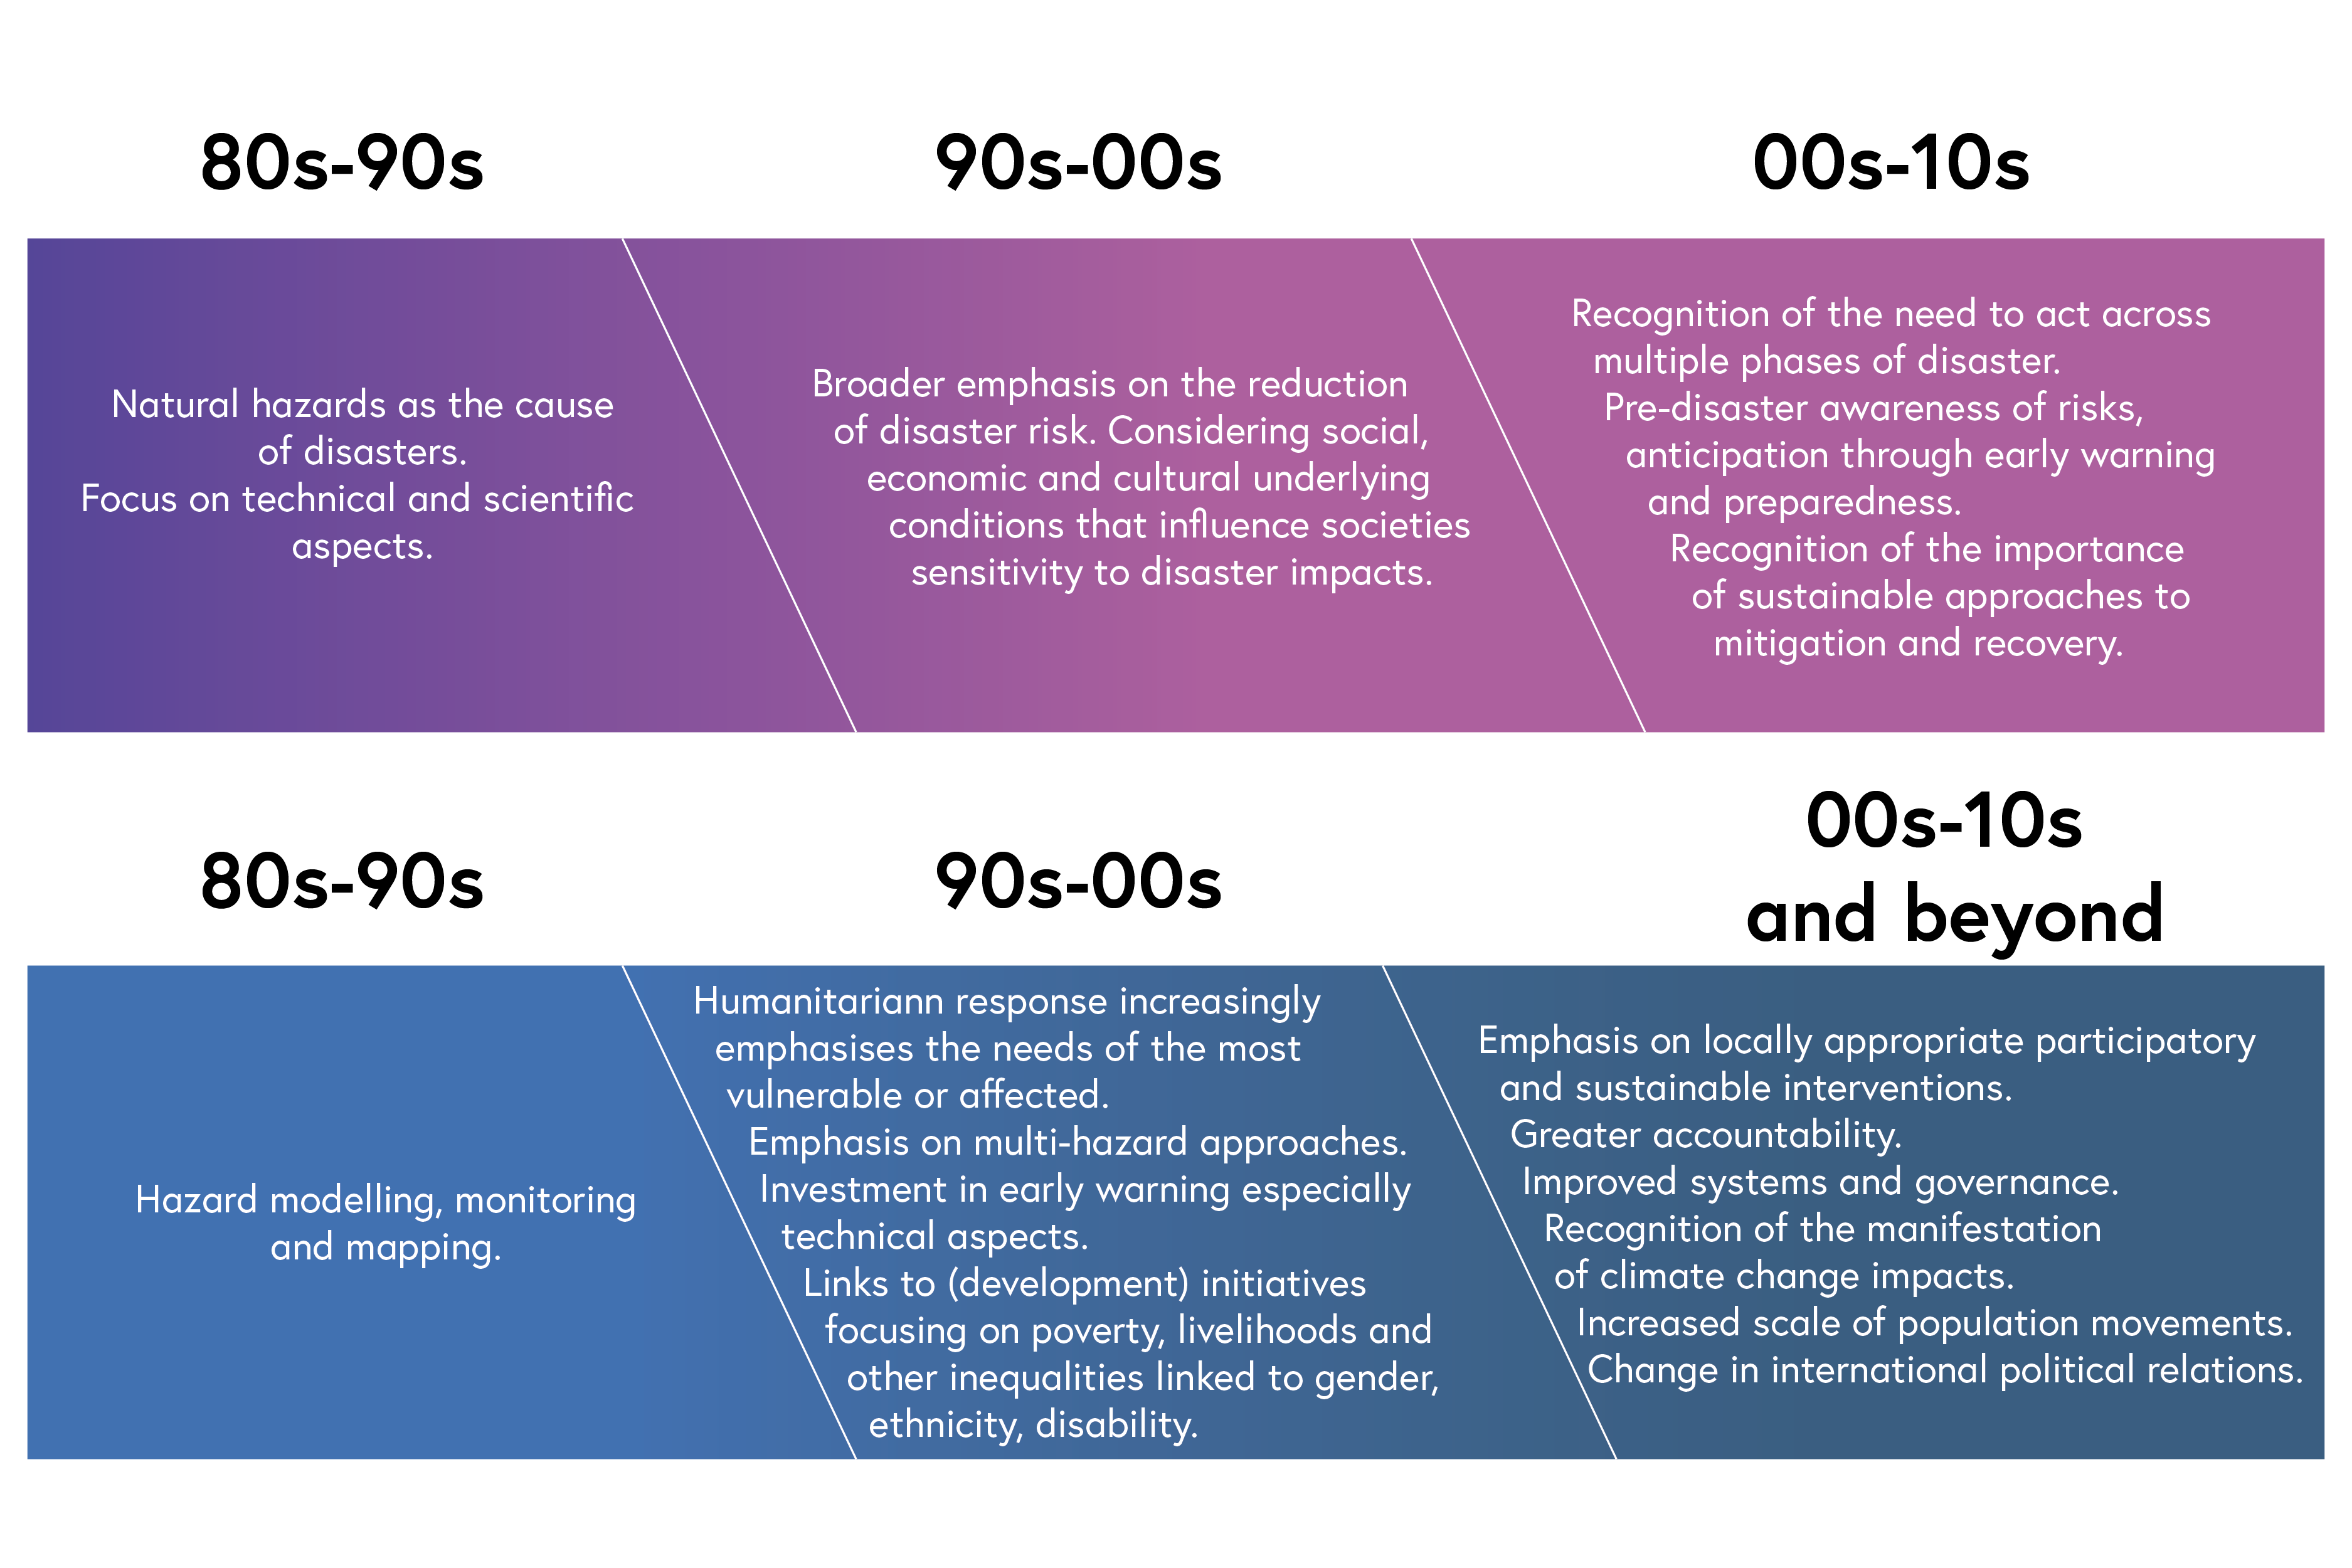 Diagram the development in Disaster Management in the 80s -90s, 90s-00s and 00s-10s. Select the image to view a screen readable PDF of this image